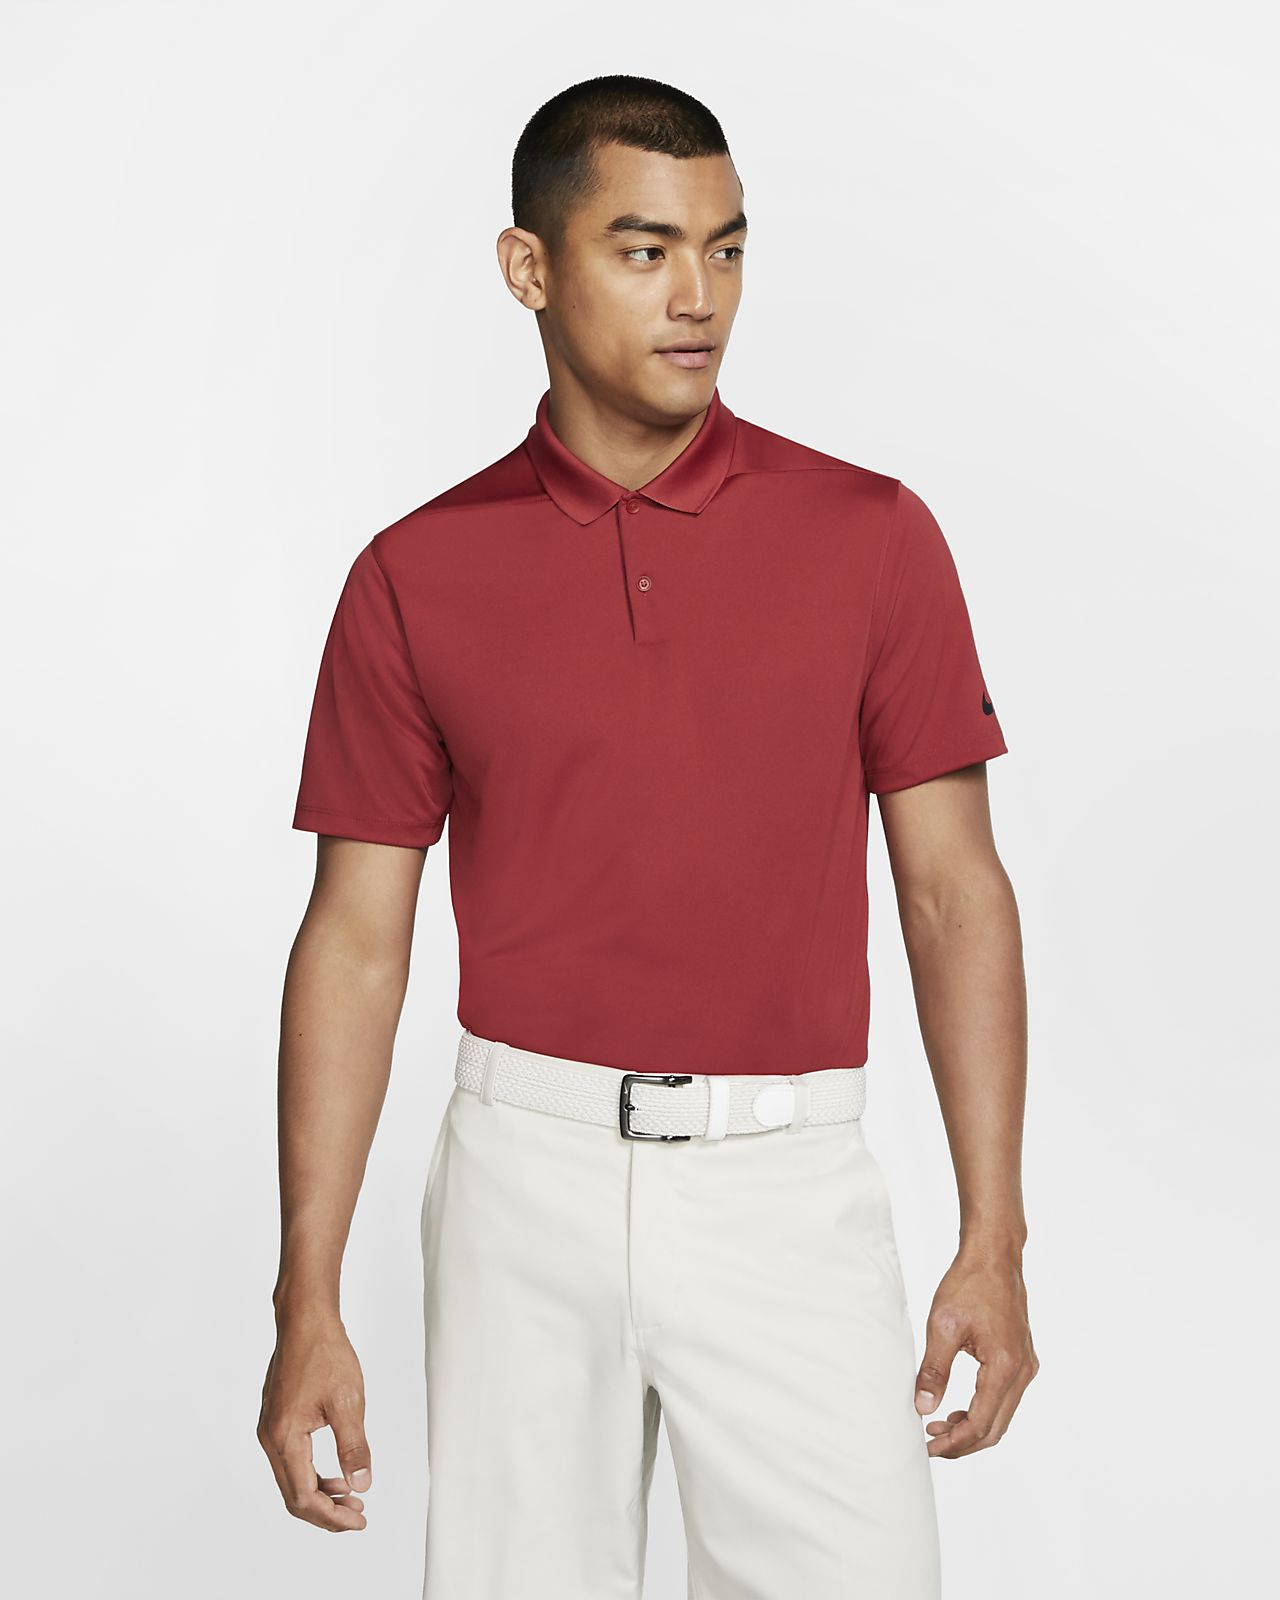 8307ca54e1436 Nike Dri-FIT Victory Men's Golf Polo. Nike.com